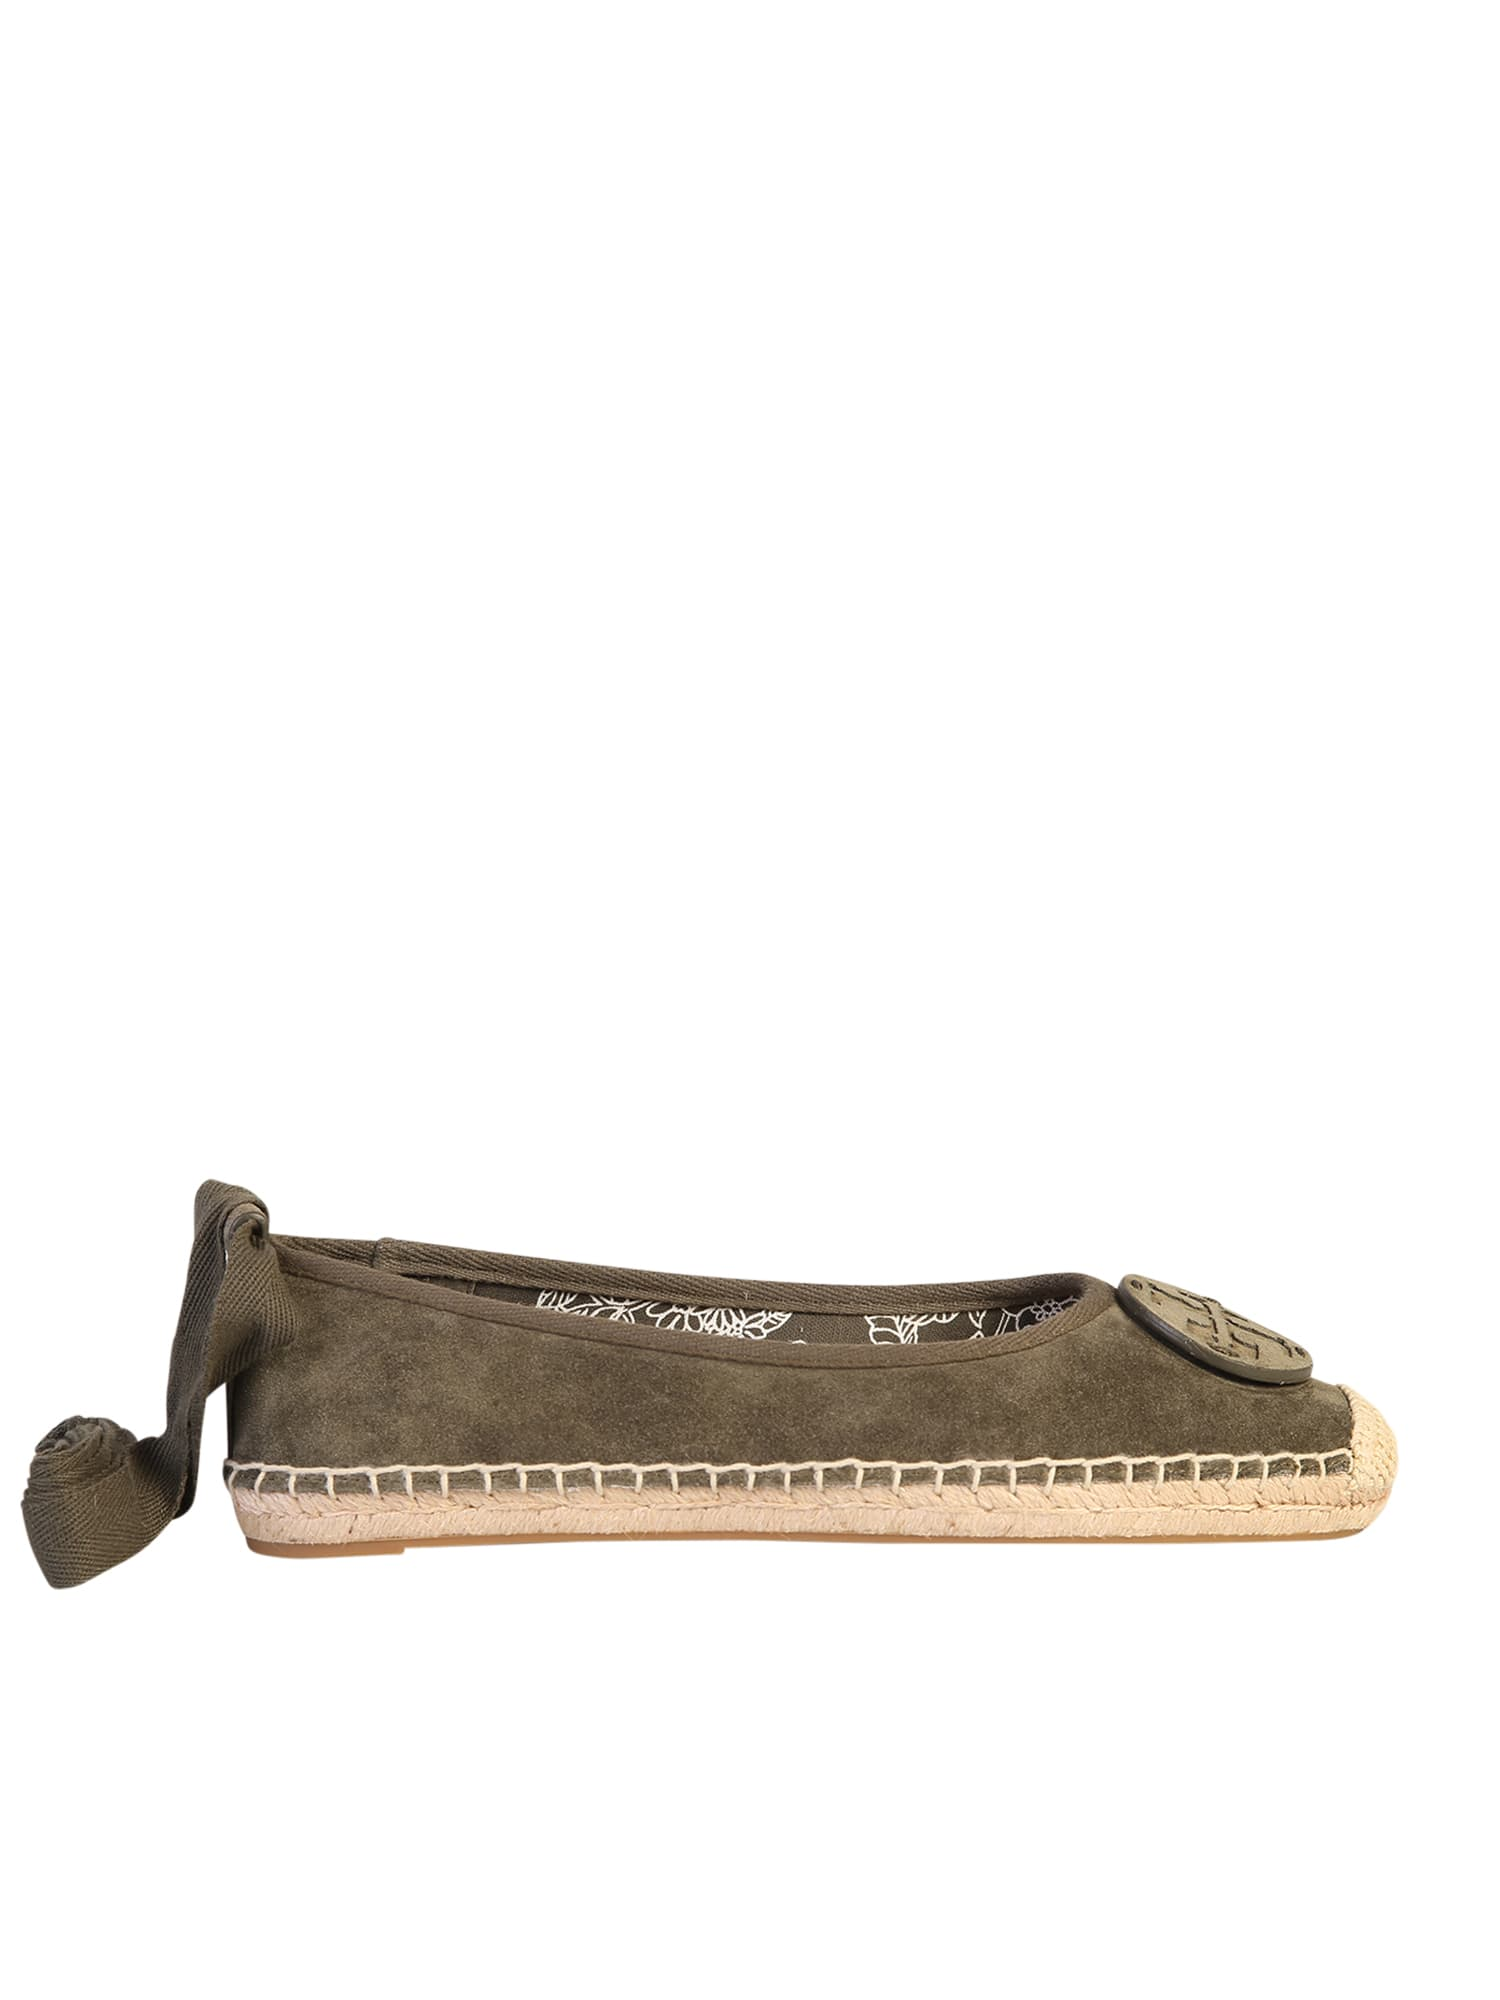 Buy Tory Burch Branded Espadrillas online, shop Tory Burch shoes with free shipping